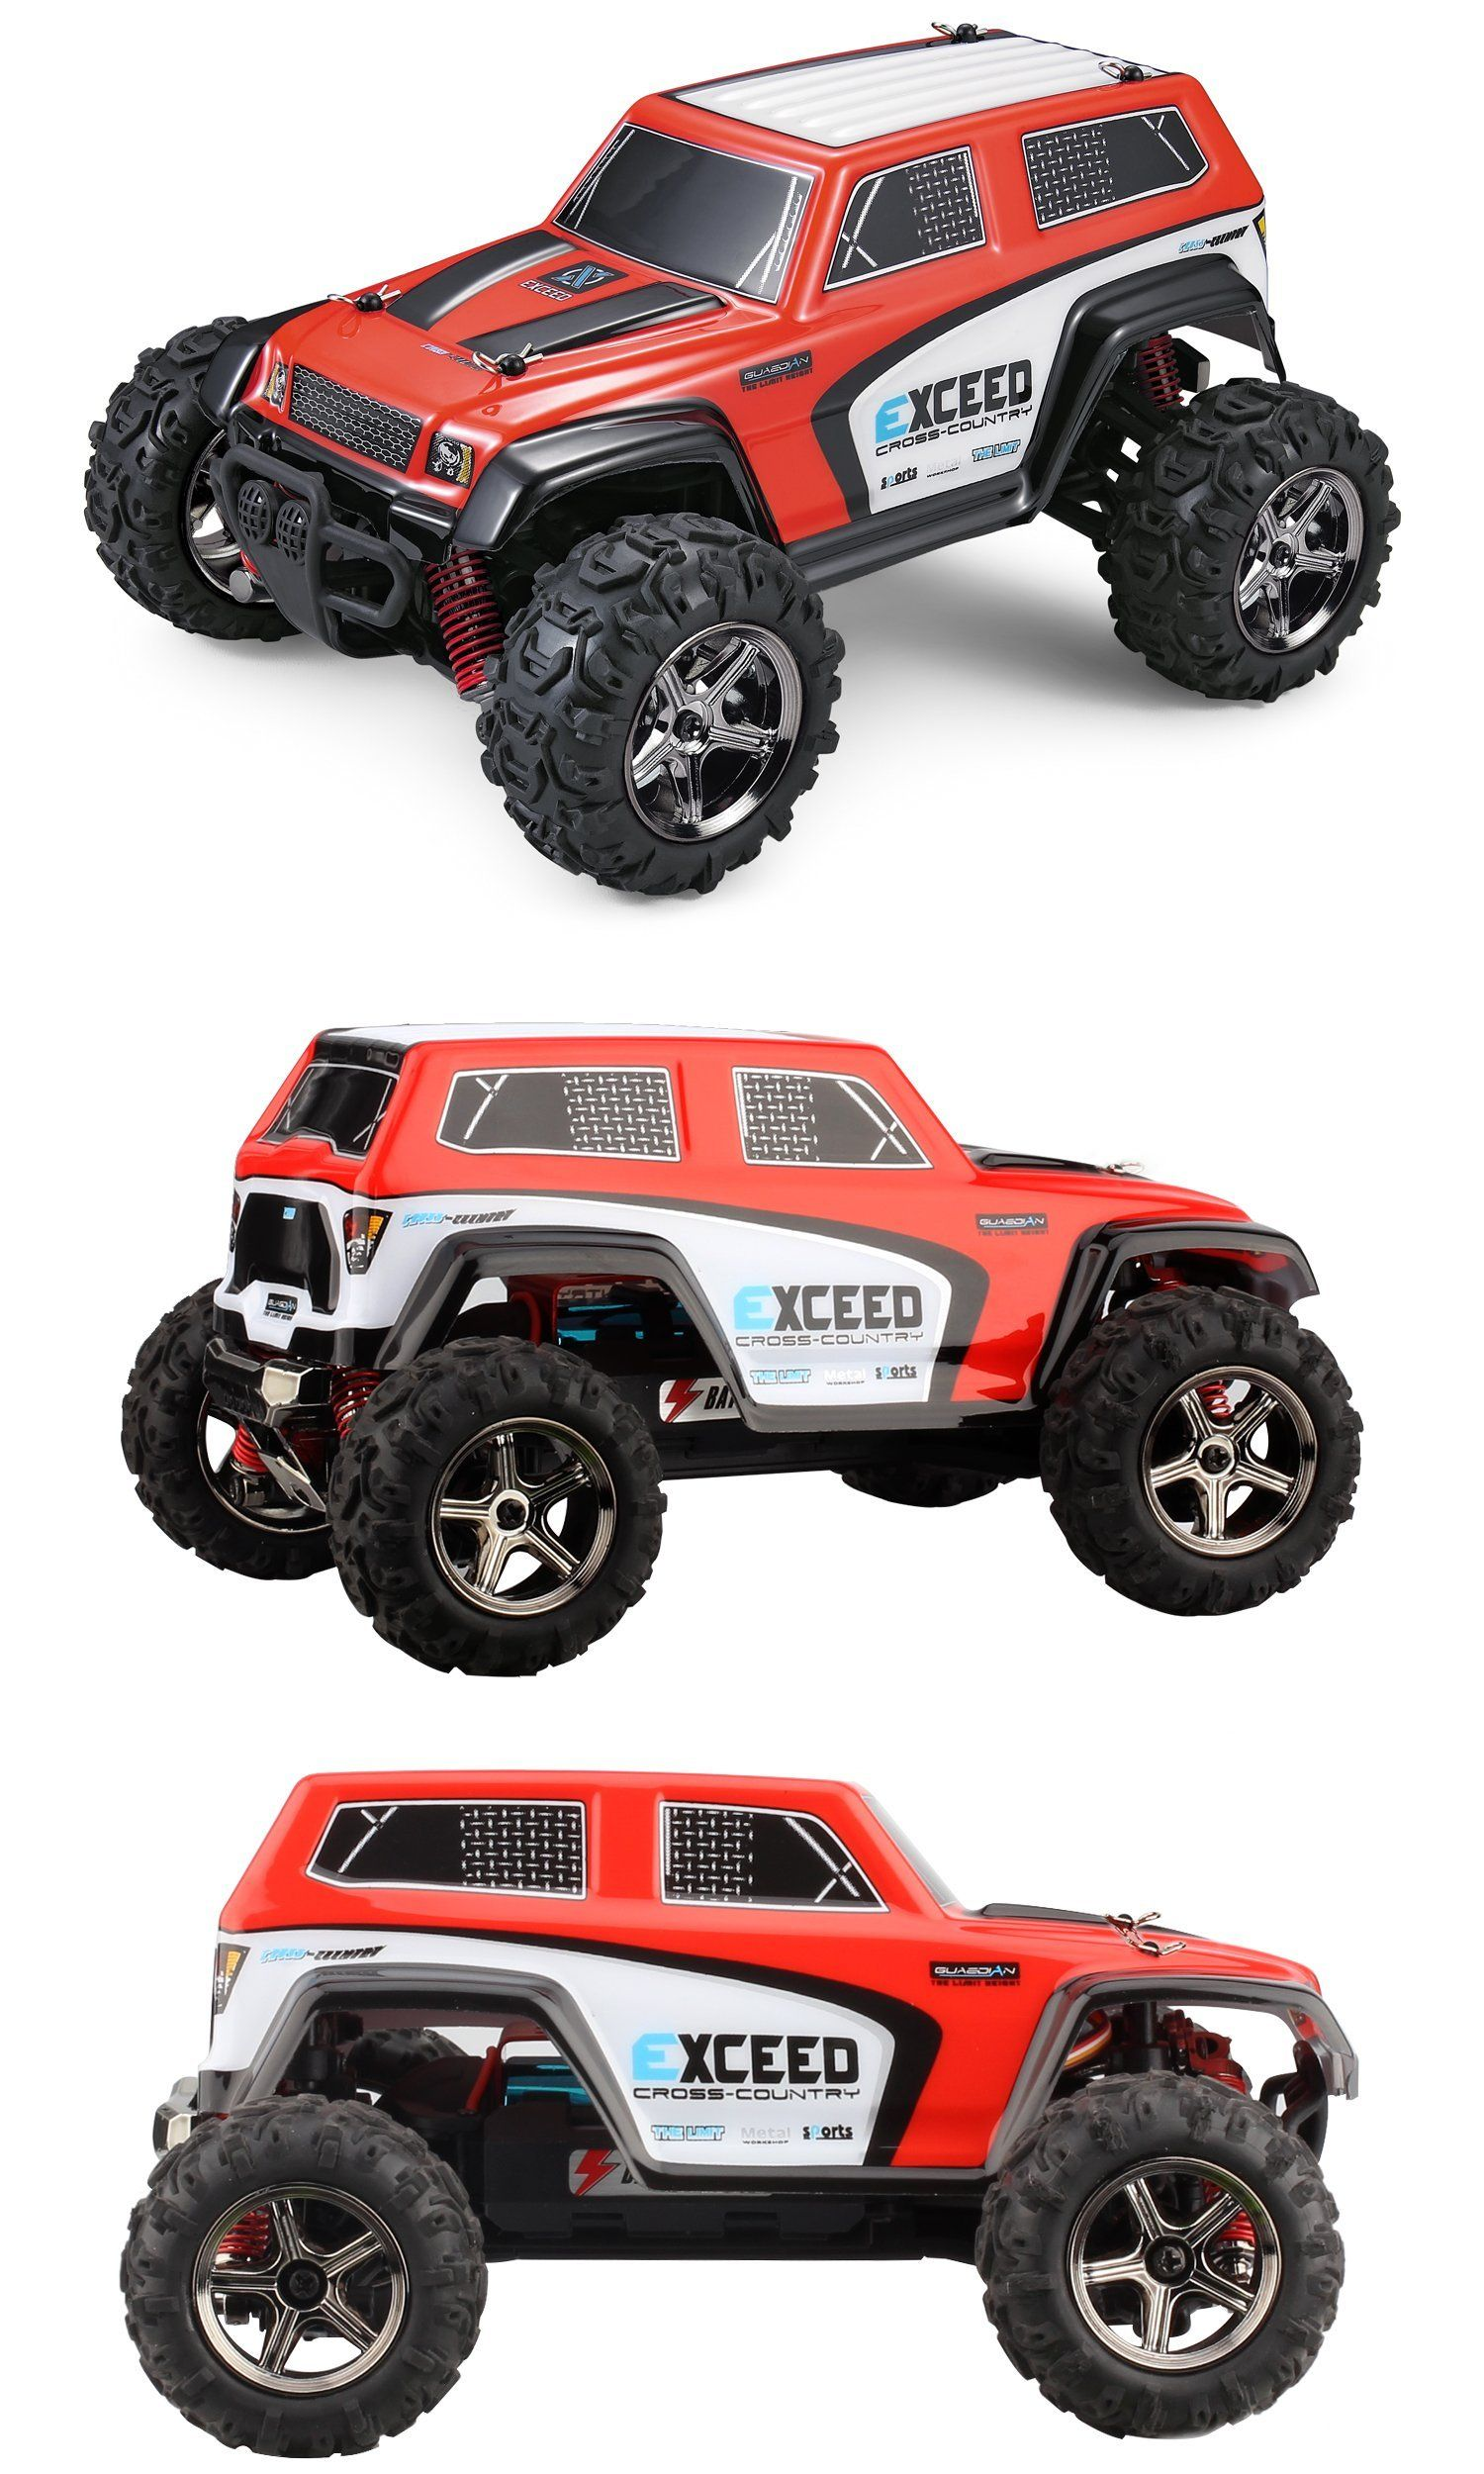 Tozo C1123 Rc Car Exceed High Speed 30mph 4x4 Fast Race Cars1 24 Rc Scale Rtr Racing 4wd Electric Power Buggy W 2 4g Rad Rc Cars Amazing Cars Toy Cars For Kids